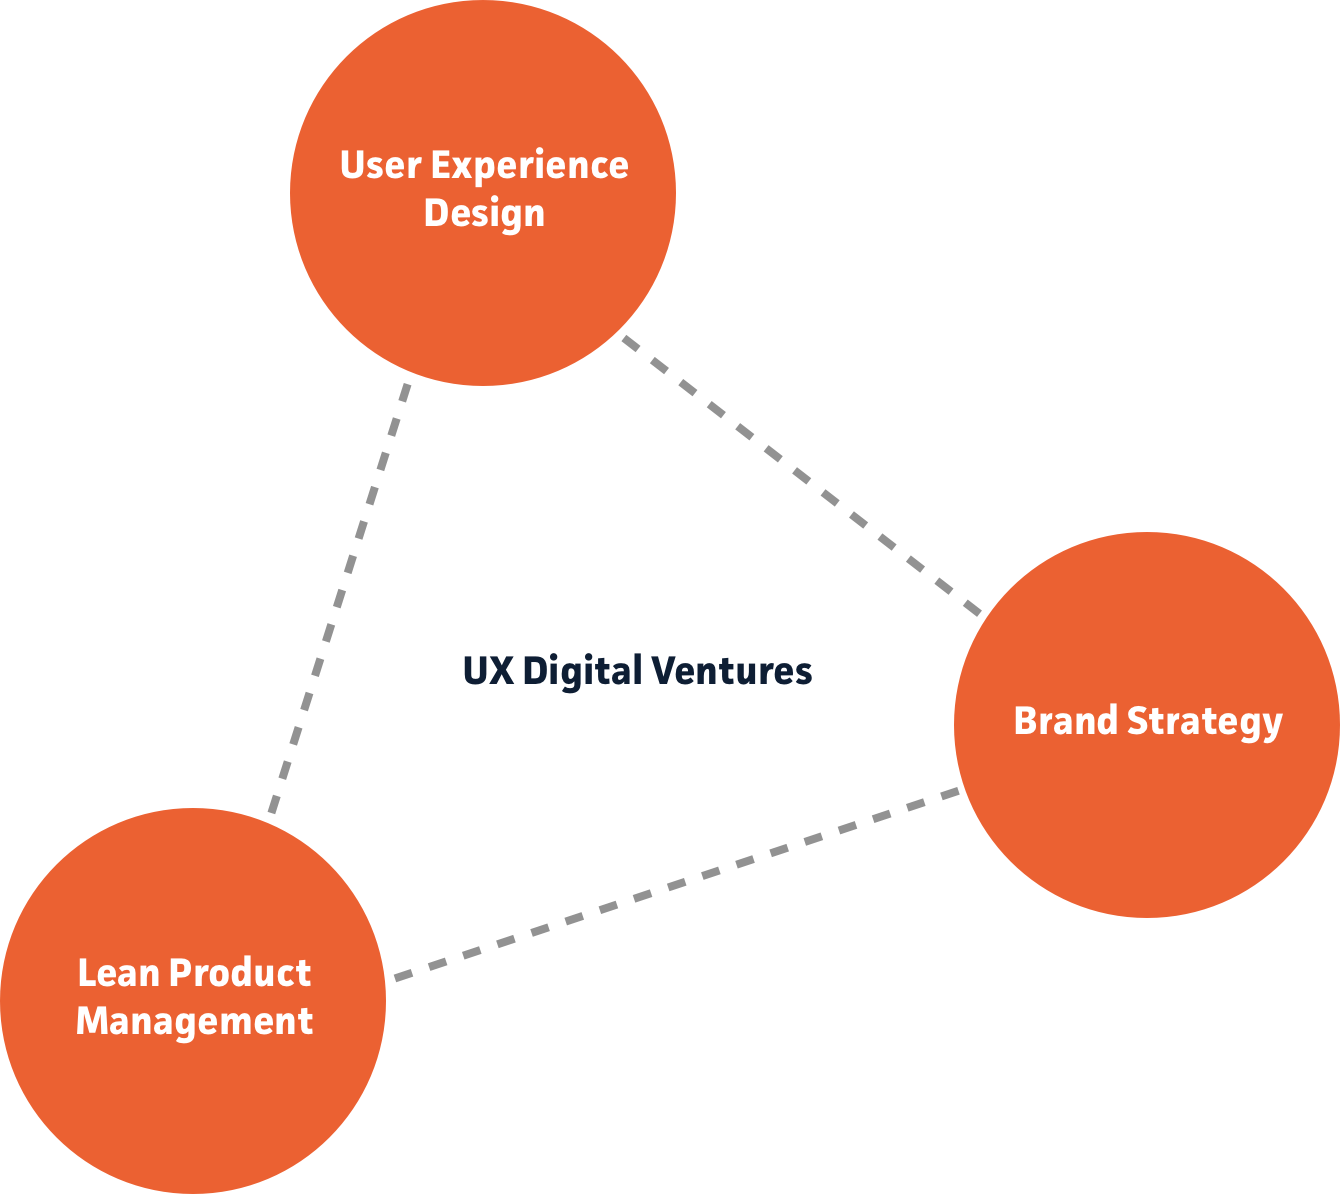 UX Digital Ventures - Die Kombination aus UX Design, Brand Strategy und Lean Product Management